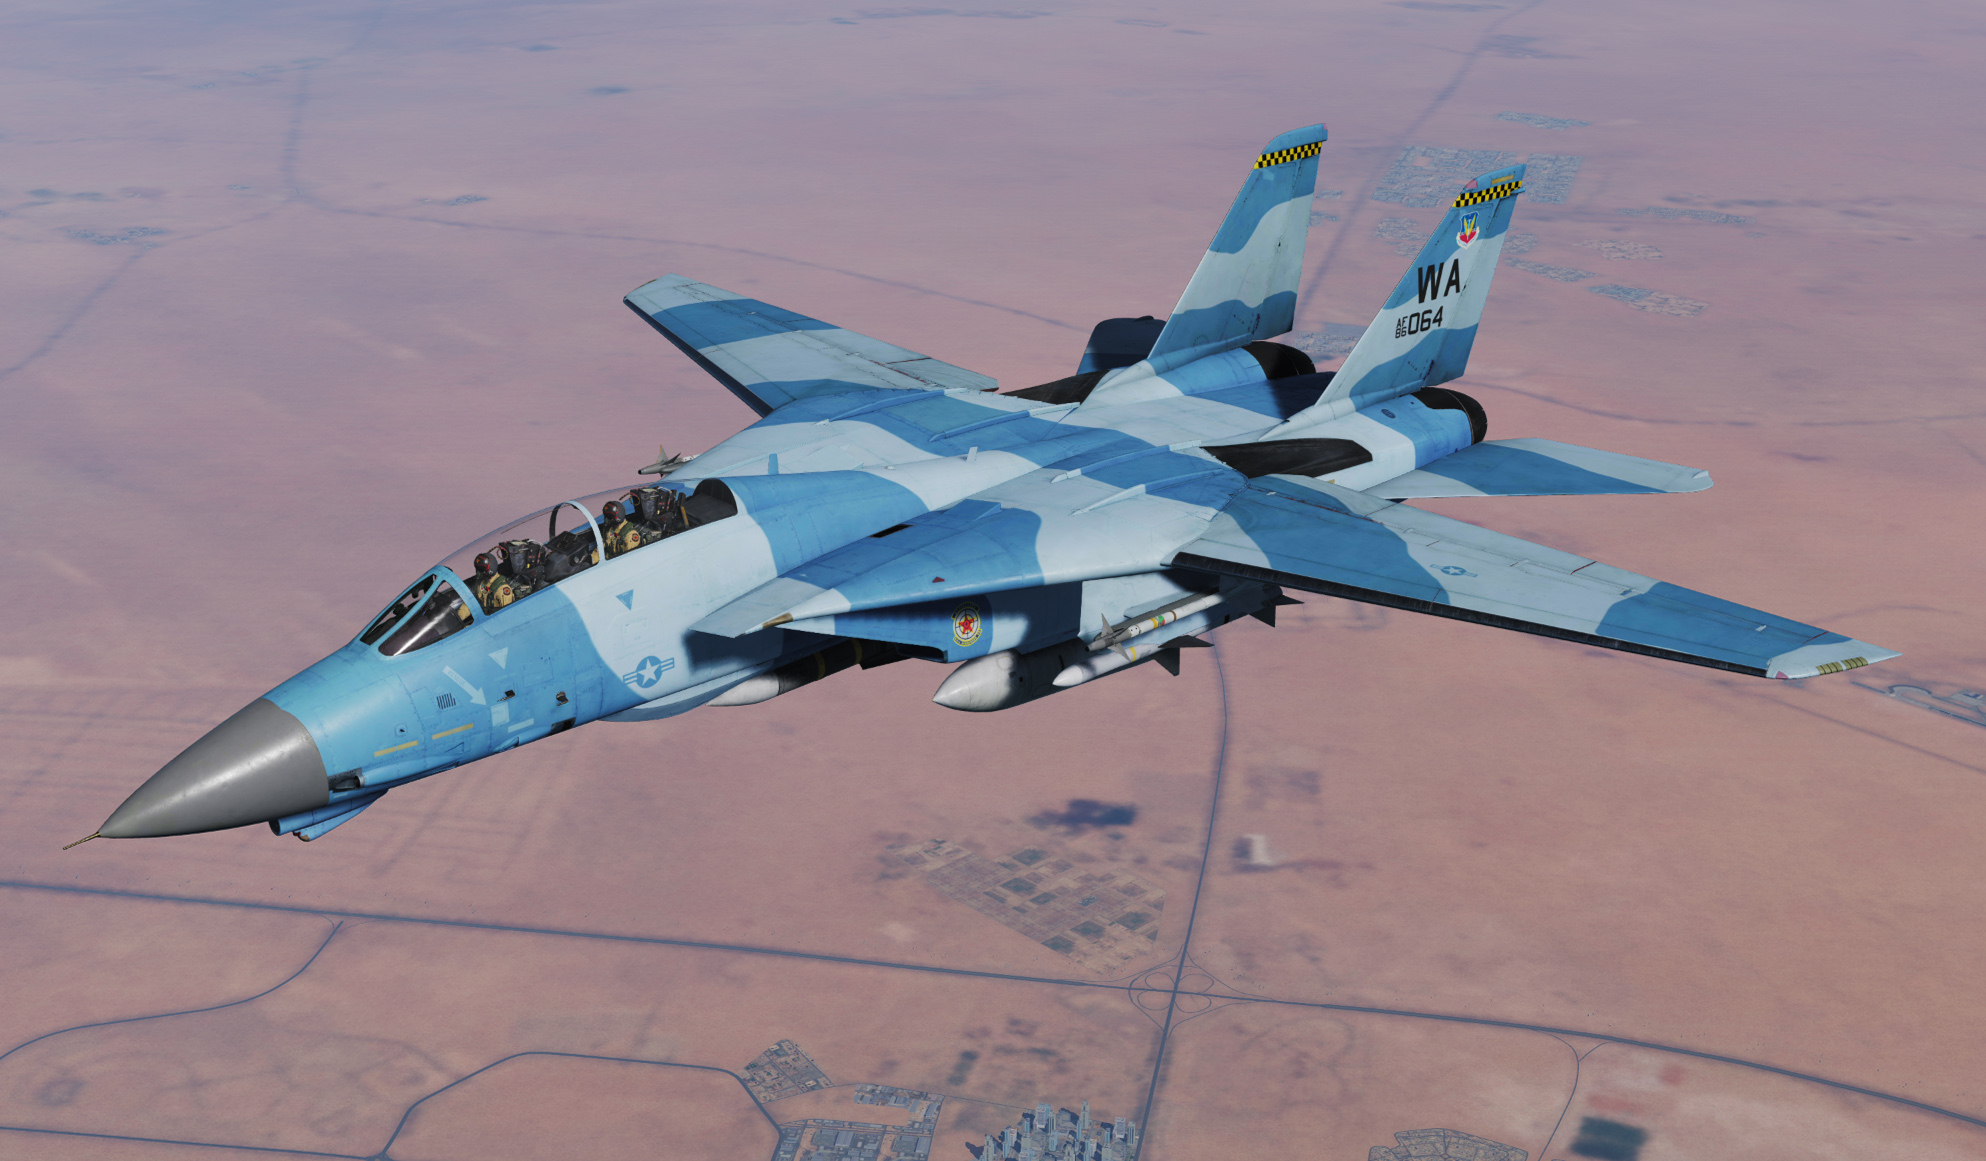 F-14B - 64th Aggressor Squadron 'Flanker'